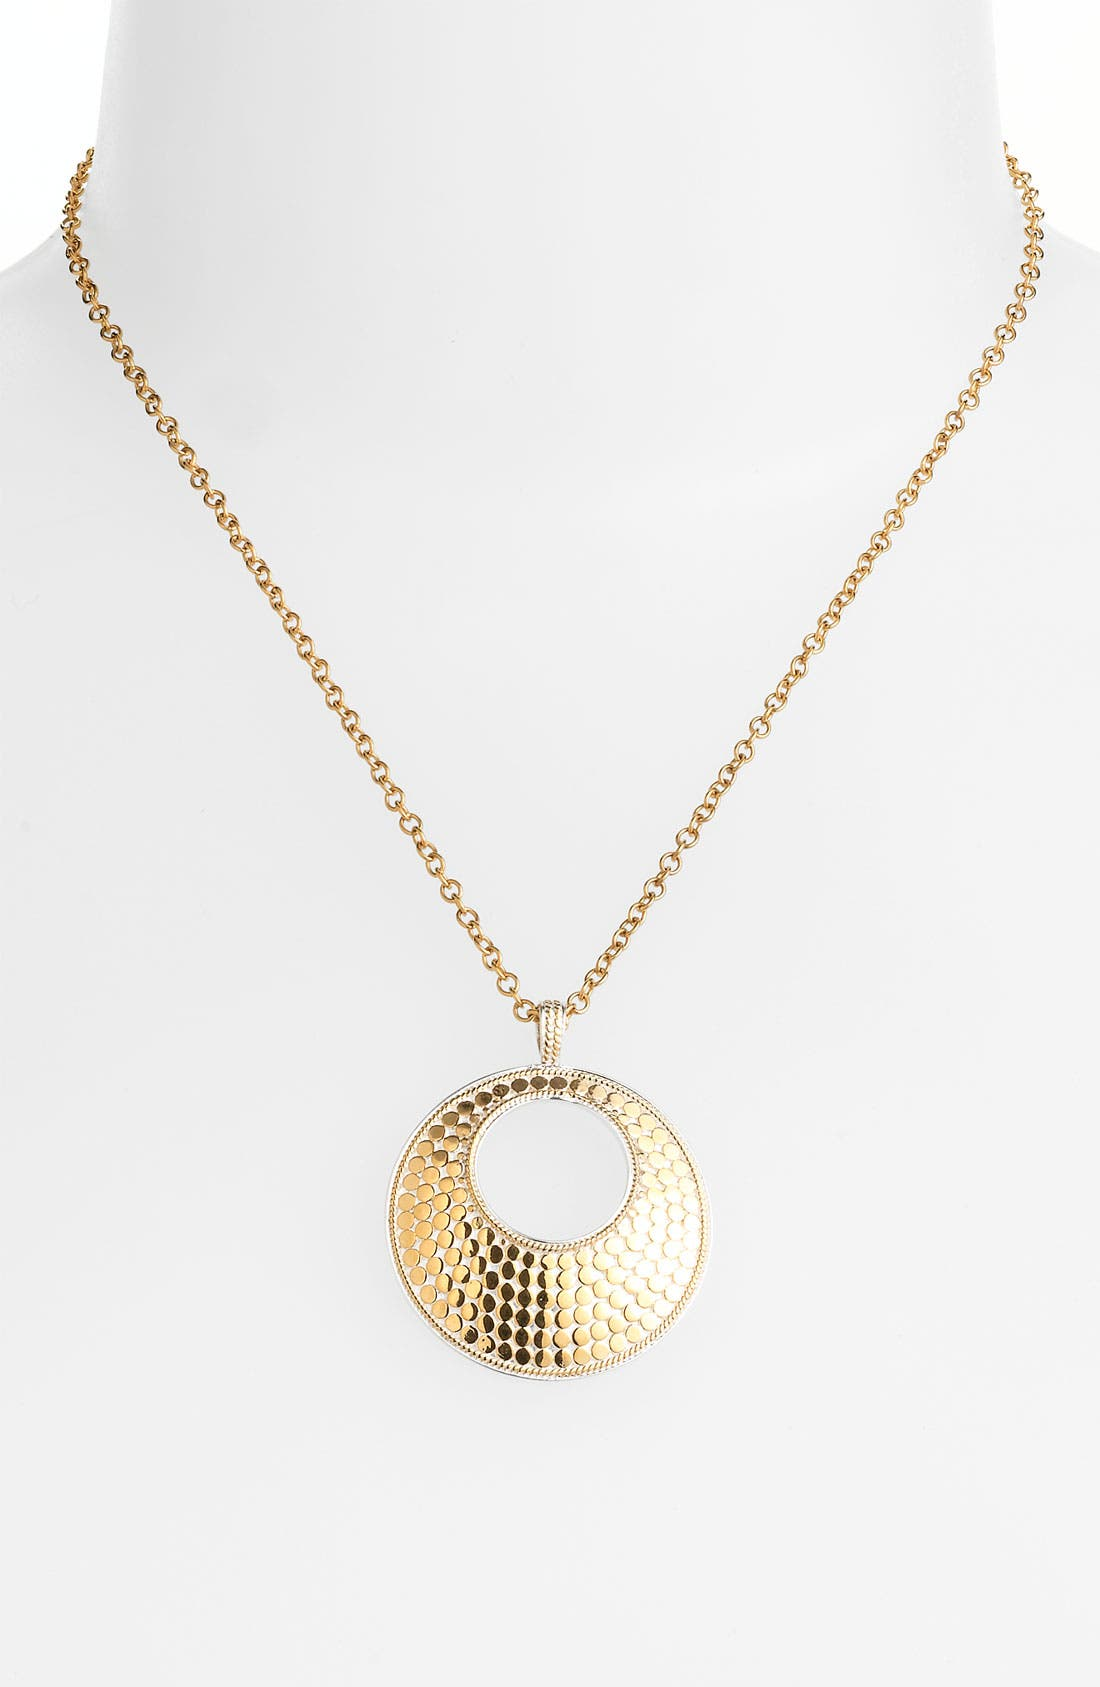 Alternate Image 1 Selected - Anna Beck 'Gili' Open Circle Pendant Necklace (Nordstrom Exclusive)